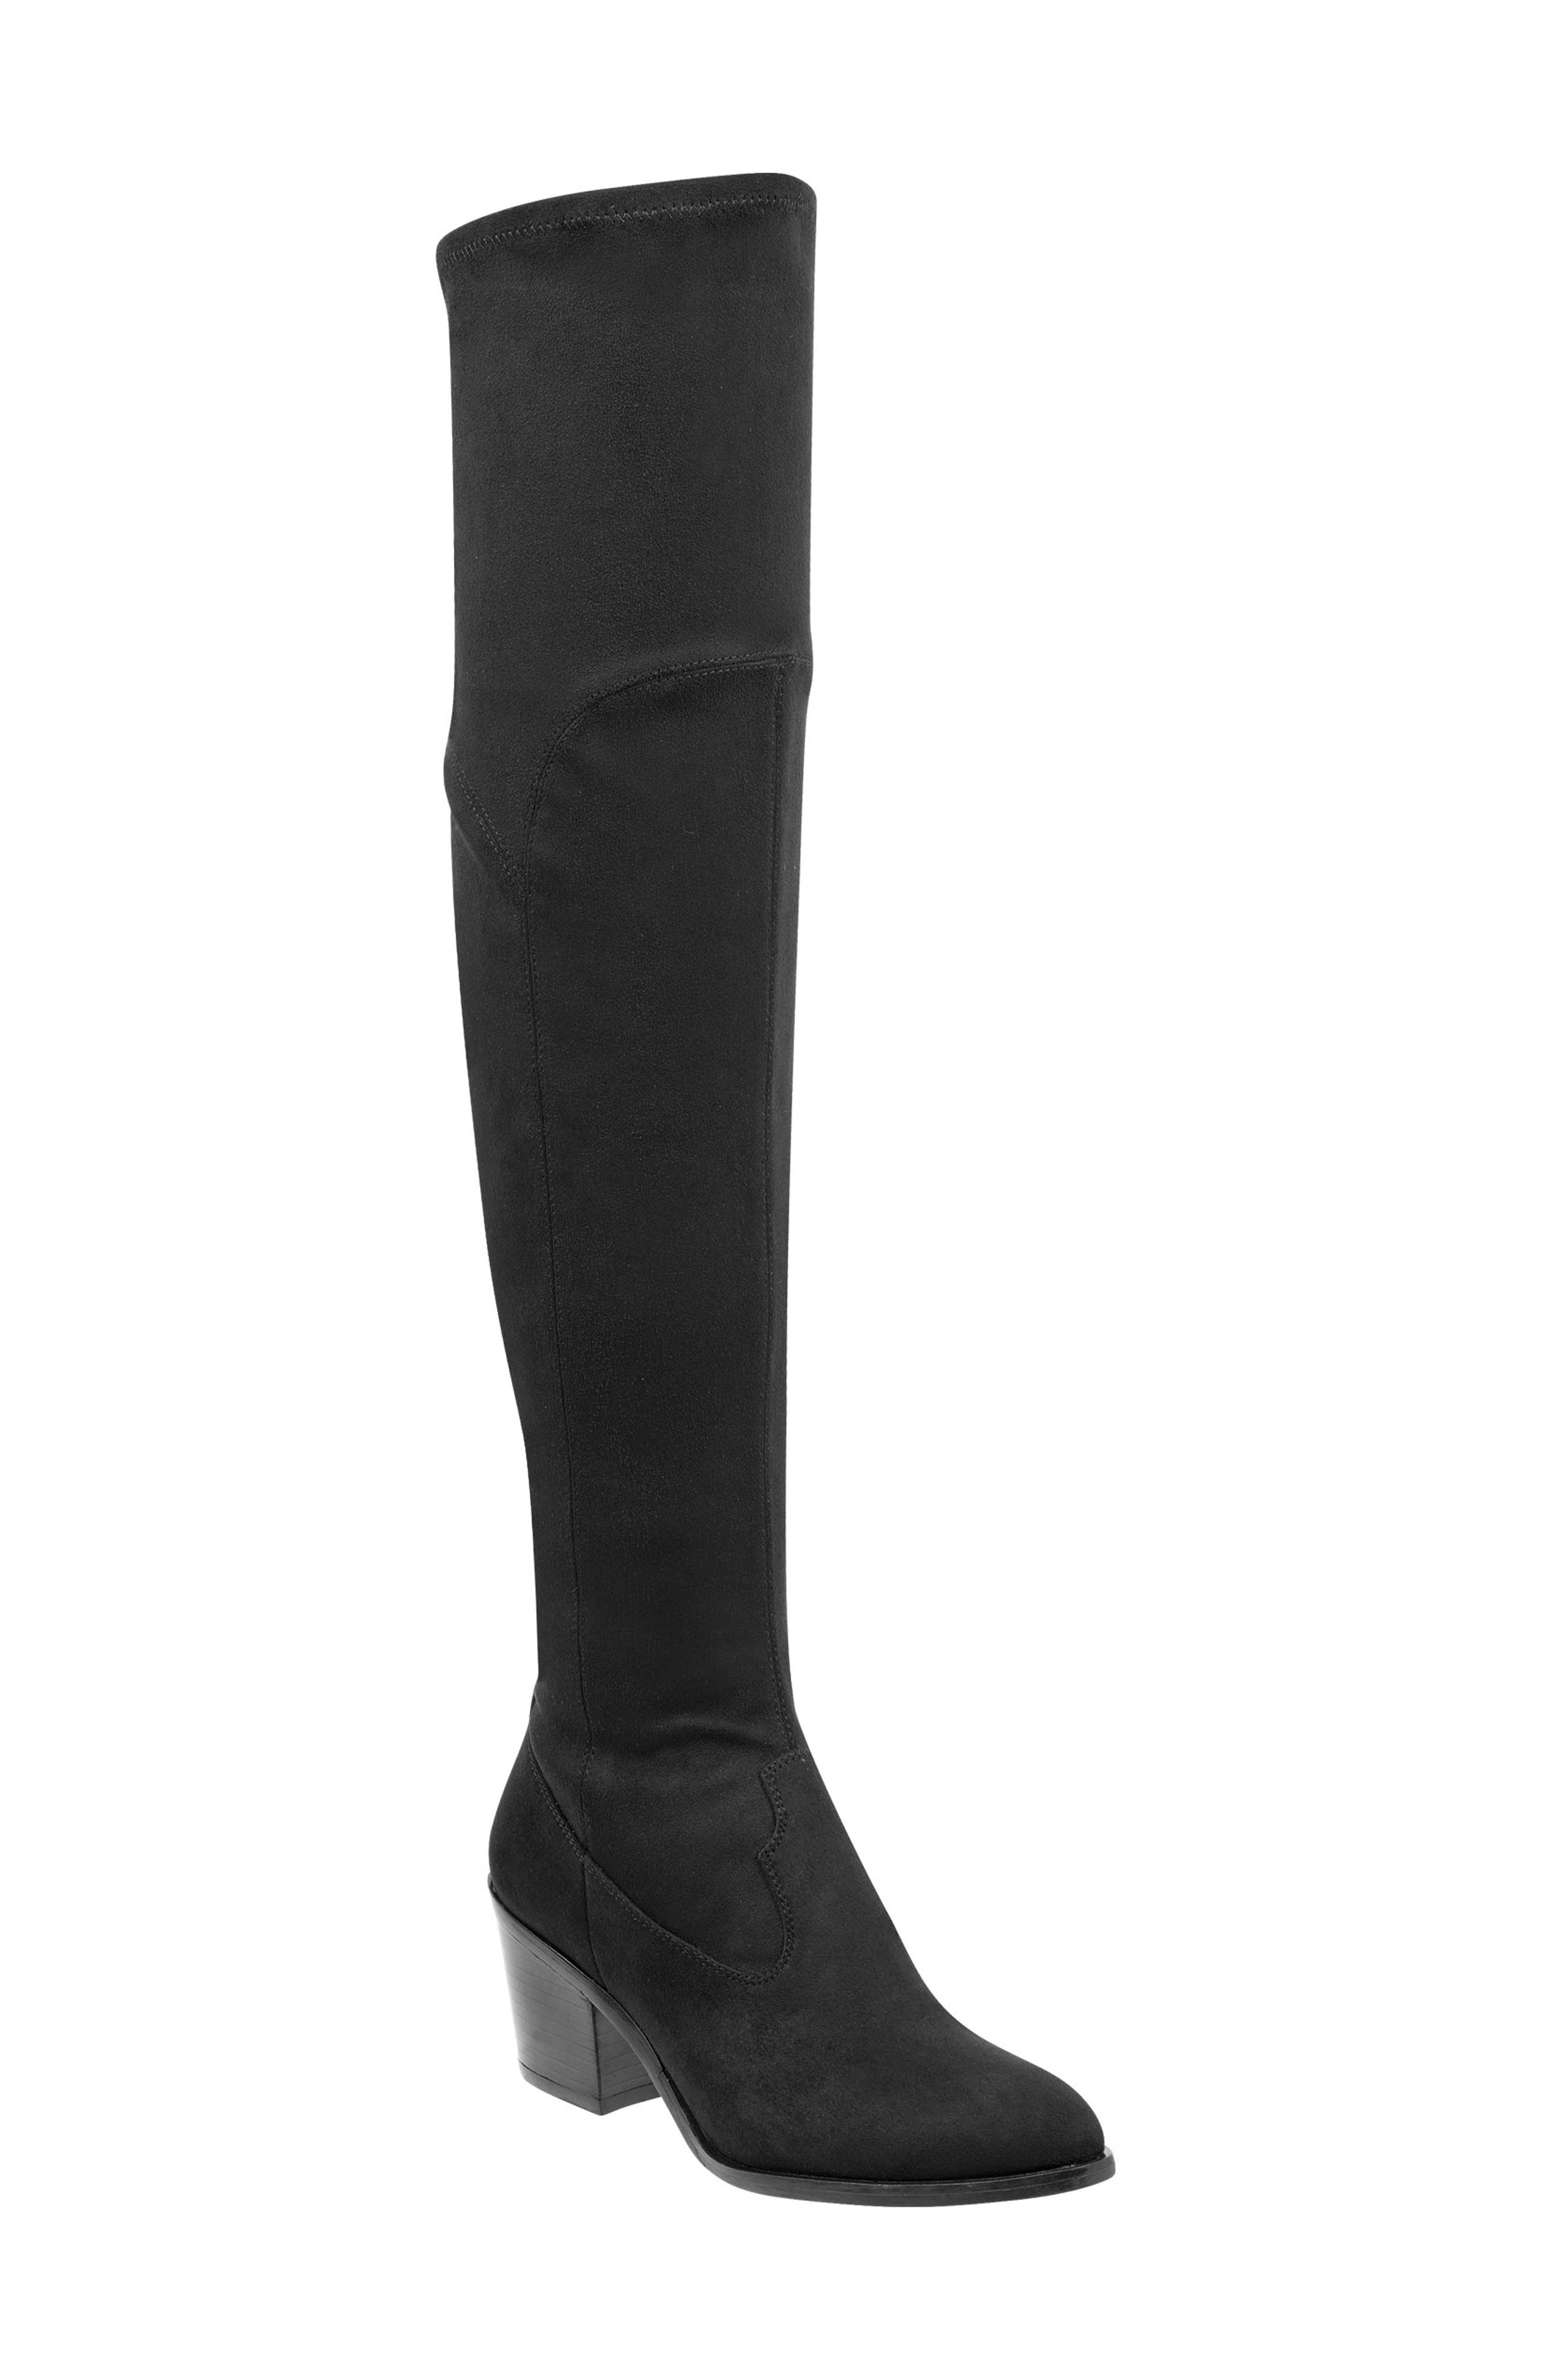 Rossa Over the Knee Boot,                             Main thumbnail 1, color,                             001